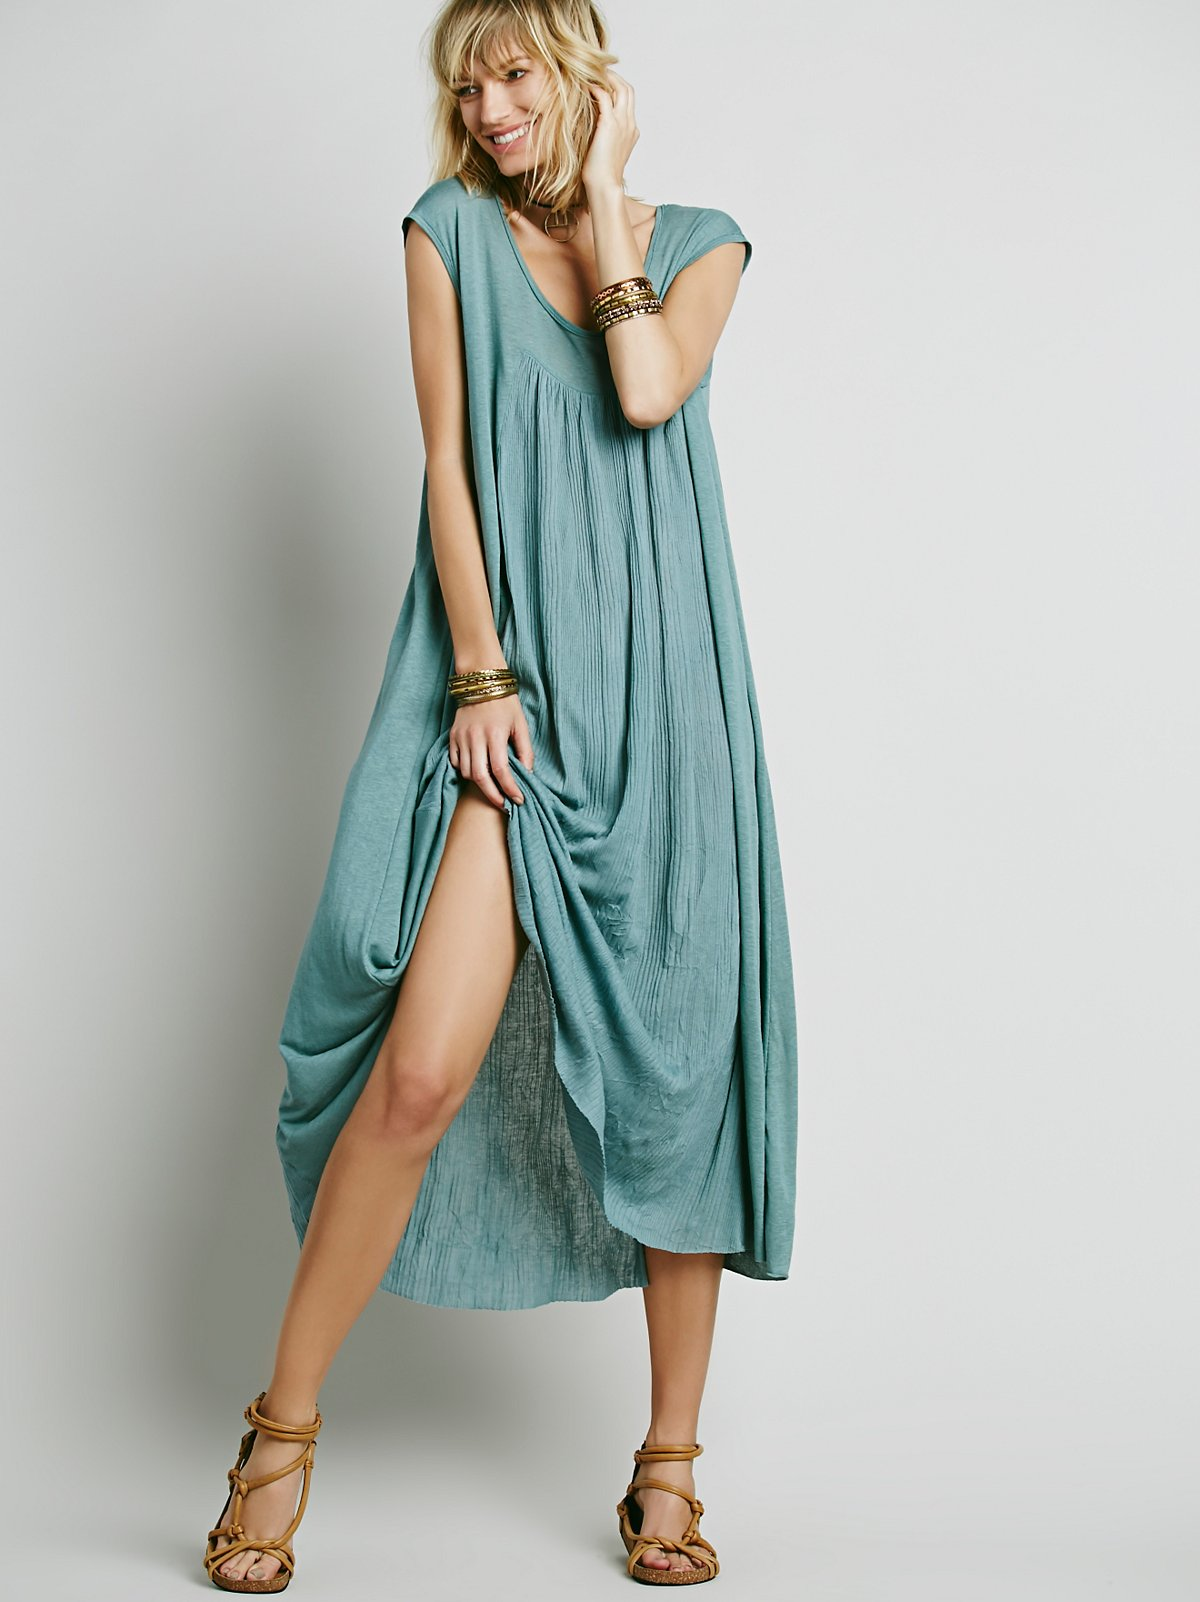 Summer Dreamin Dress